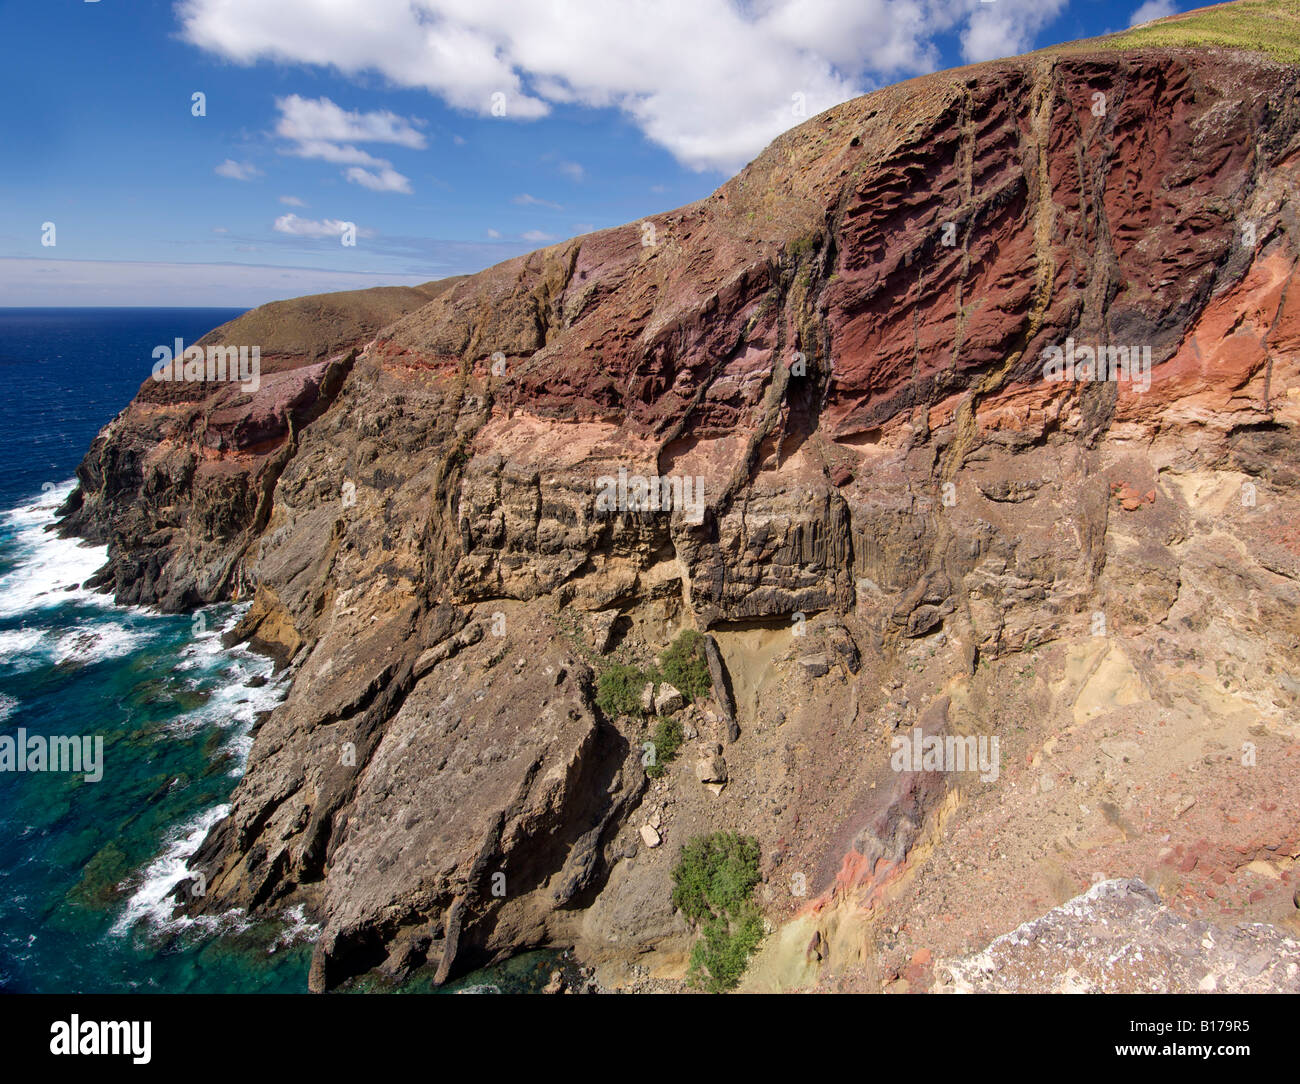 Coastal landscape at Ponta do Gabriel on the Portuguese Atlantic island of Porto Santo. - Stock Image